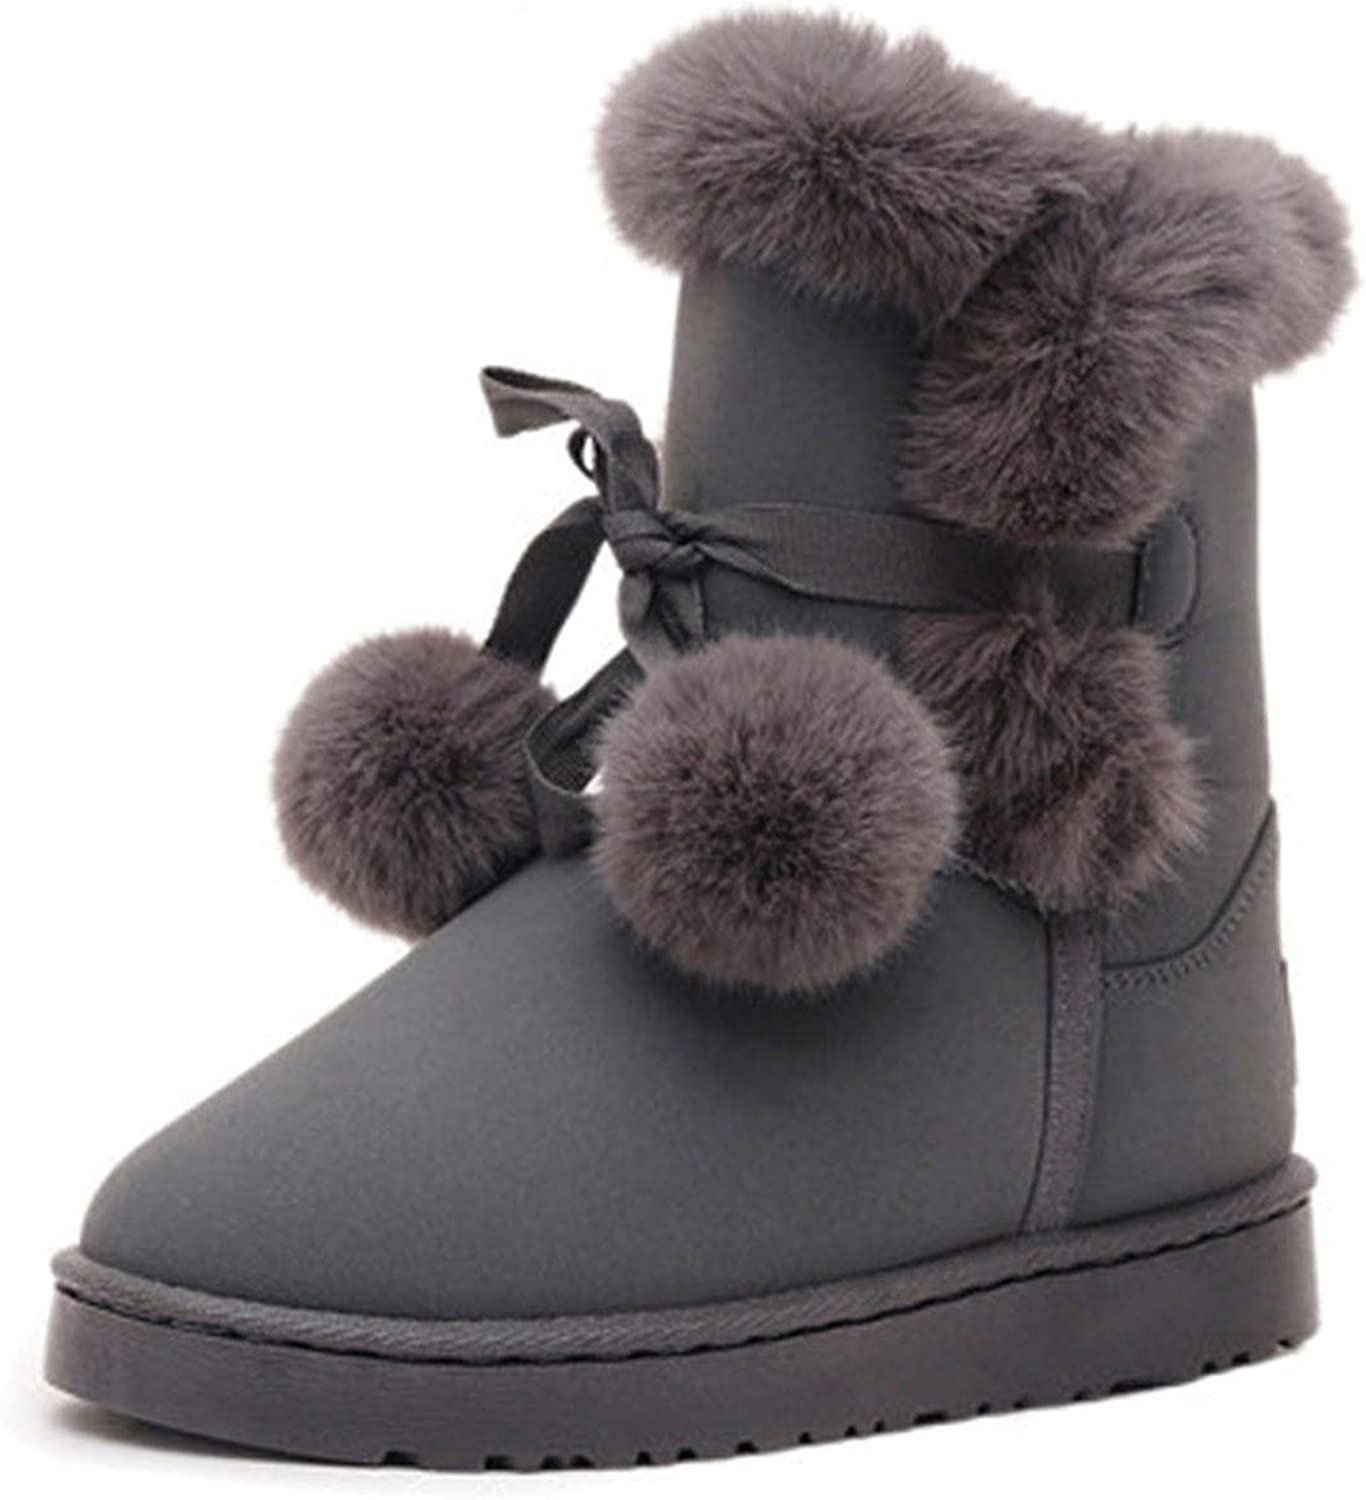 Woman Boots Round Toe Yarn Elastic Ankle Boots Thick Heel Flat Heels shoes Woman Female Socks Boots Winter